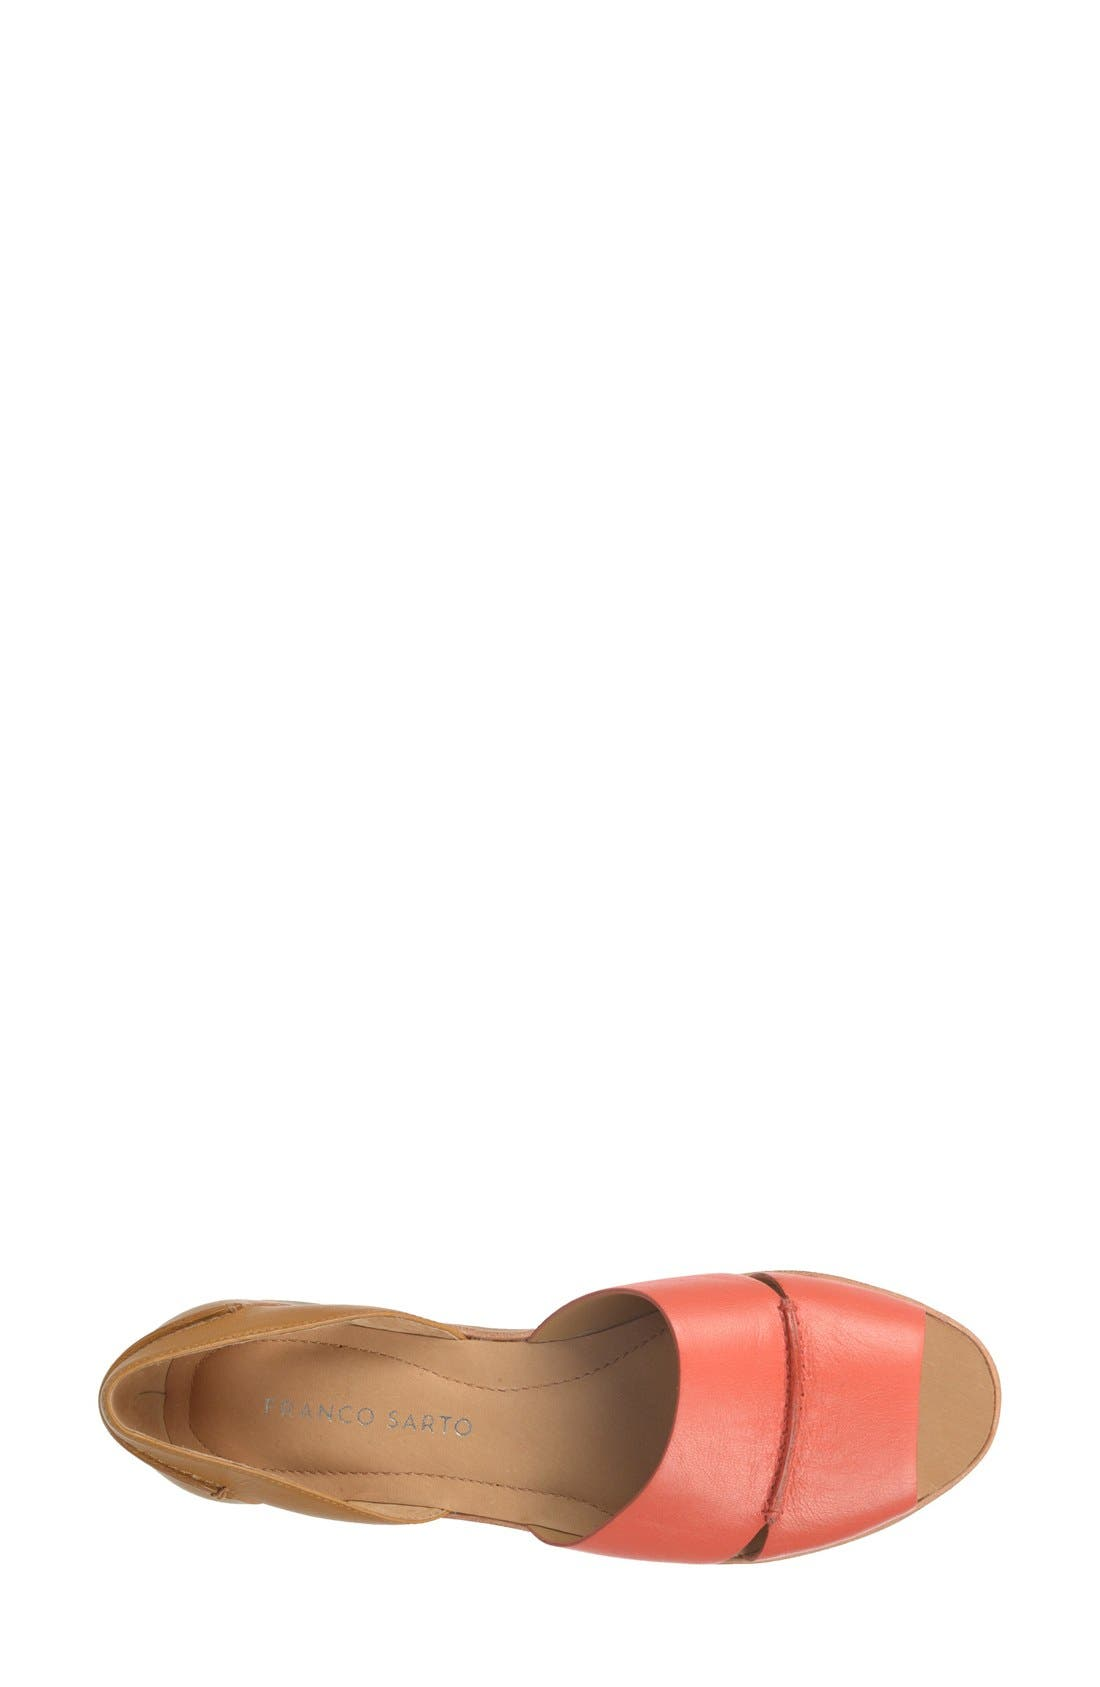 'Vivace' Leather d'Orsay Flat,                             Alternate thumbnail 3, color,                             Coral/ Tan